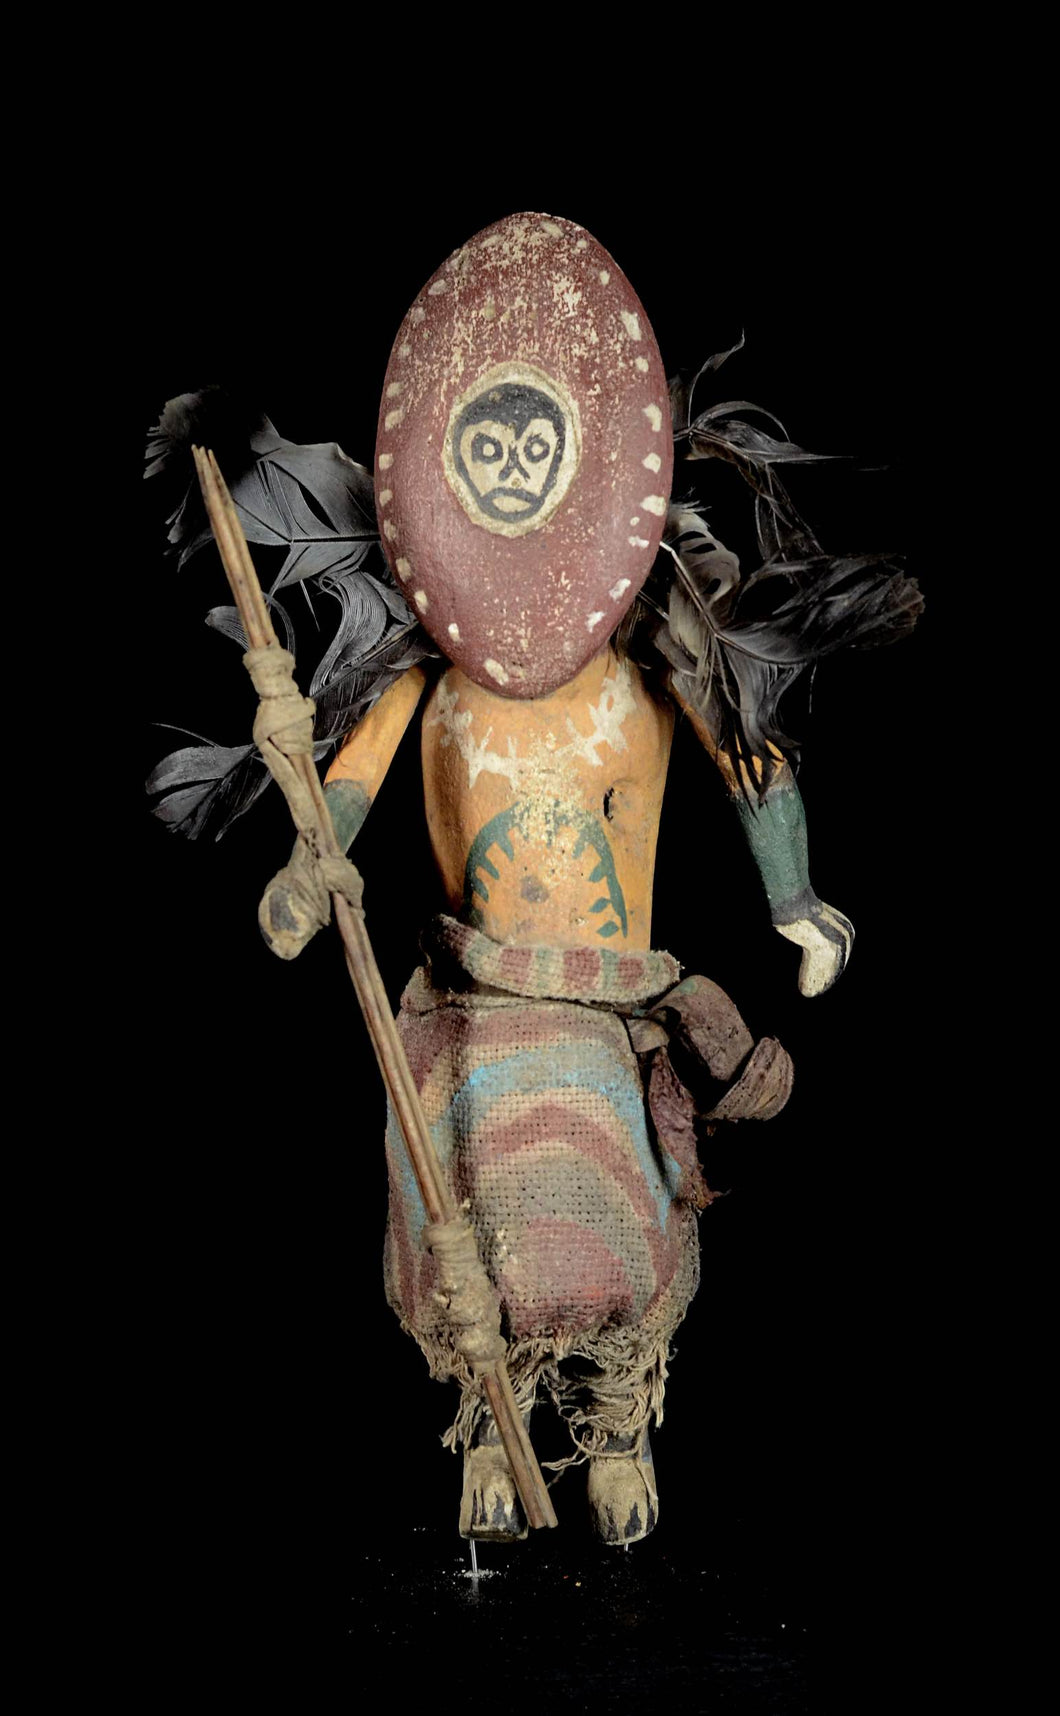 Great KACHINA Doll from the HOPI Indians with spears - Amerindians - USA